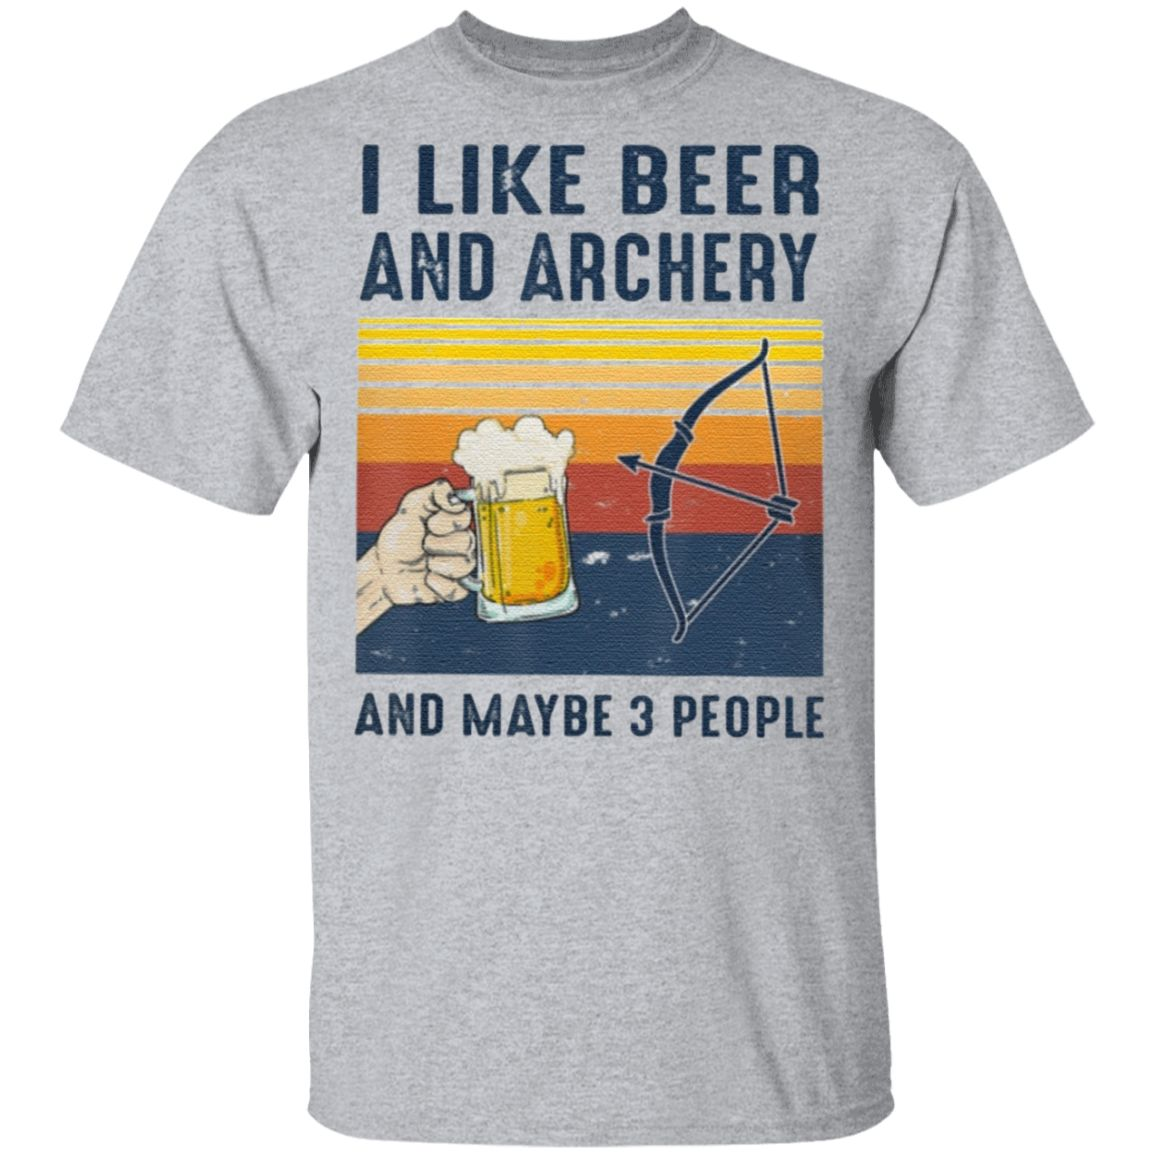 I like Beer Archery maybe 3 people T Shirt